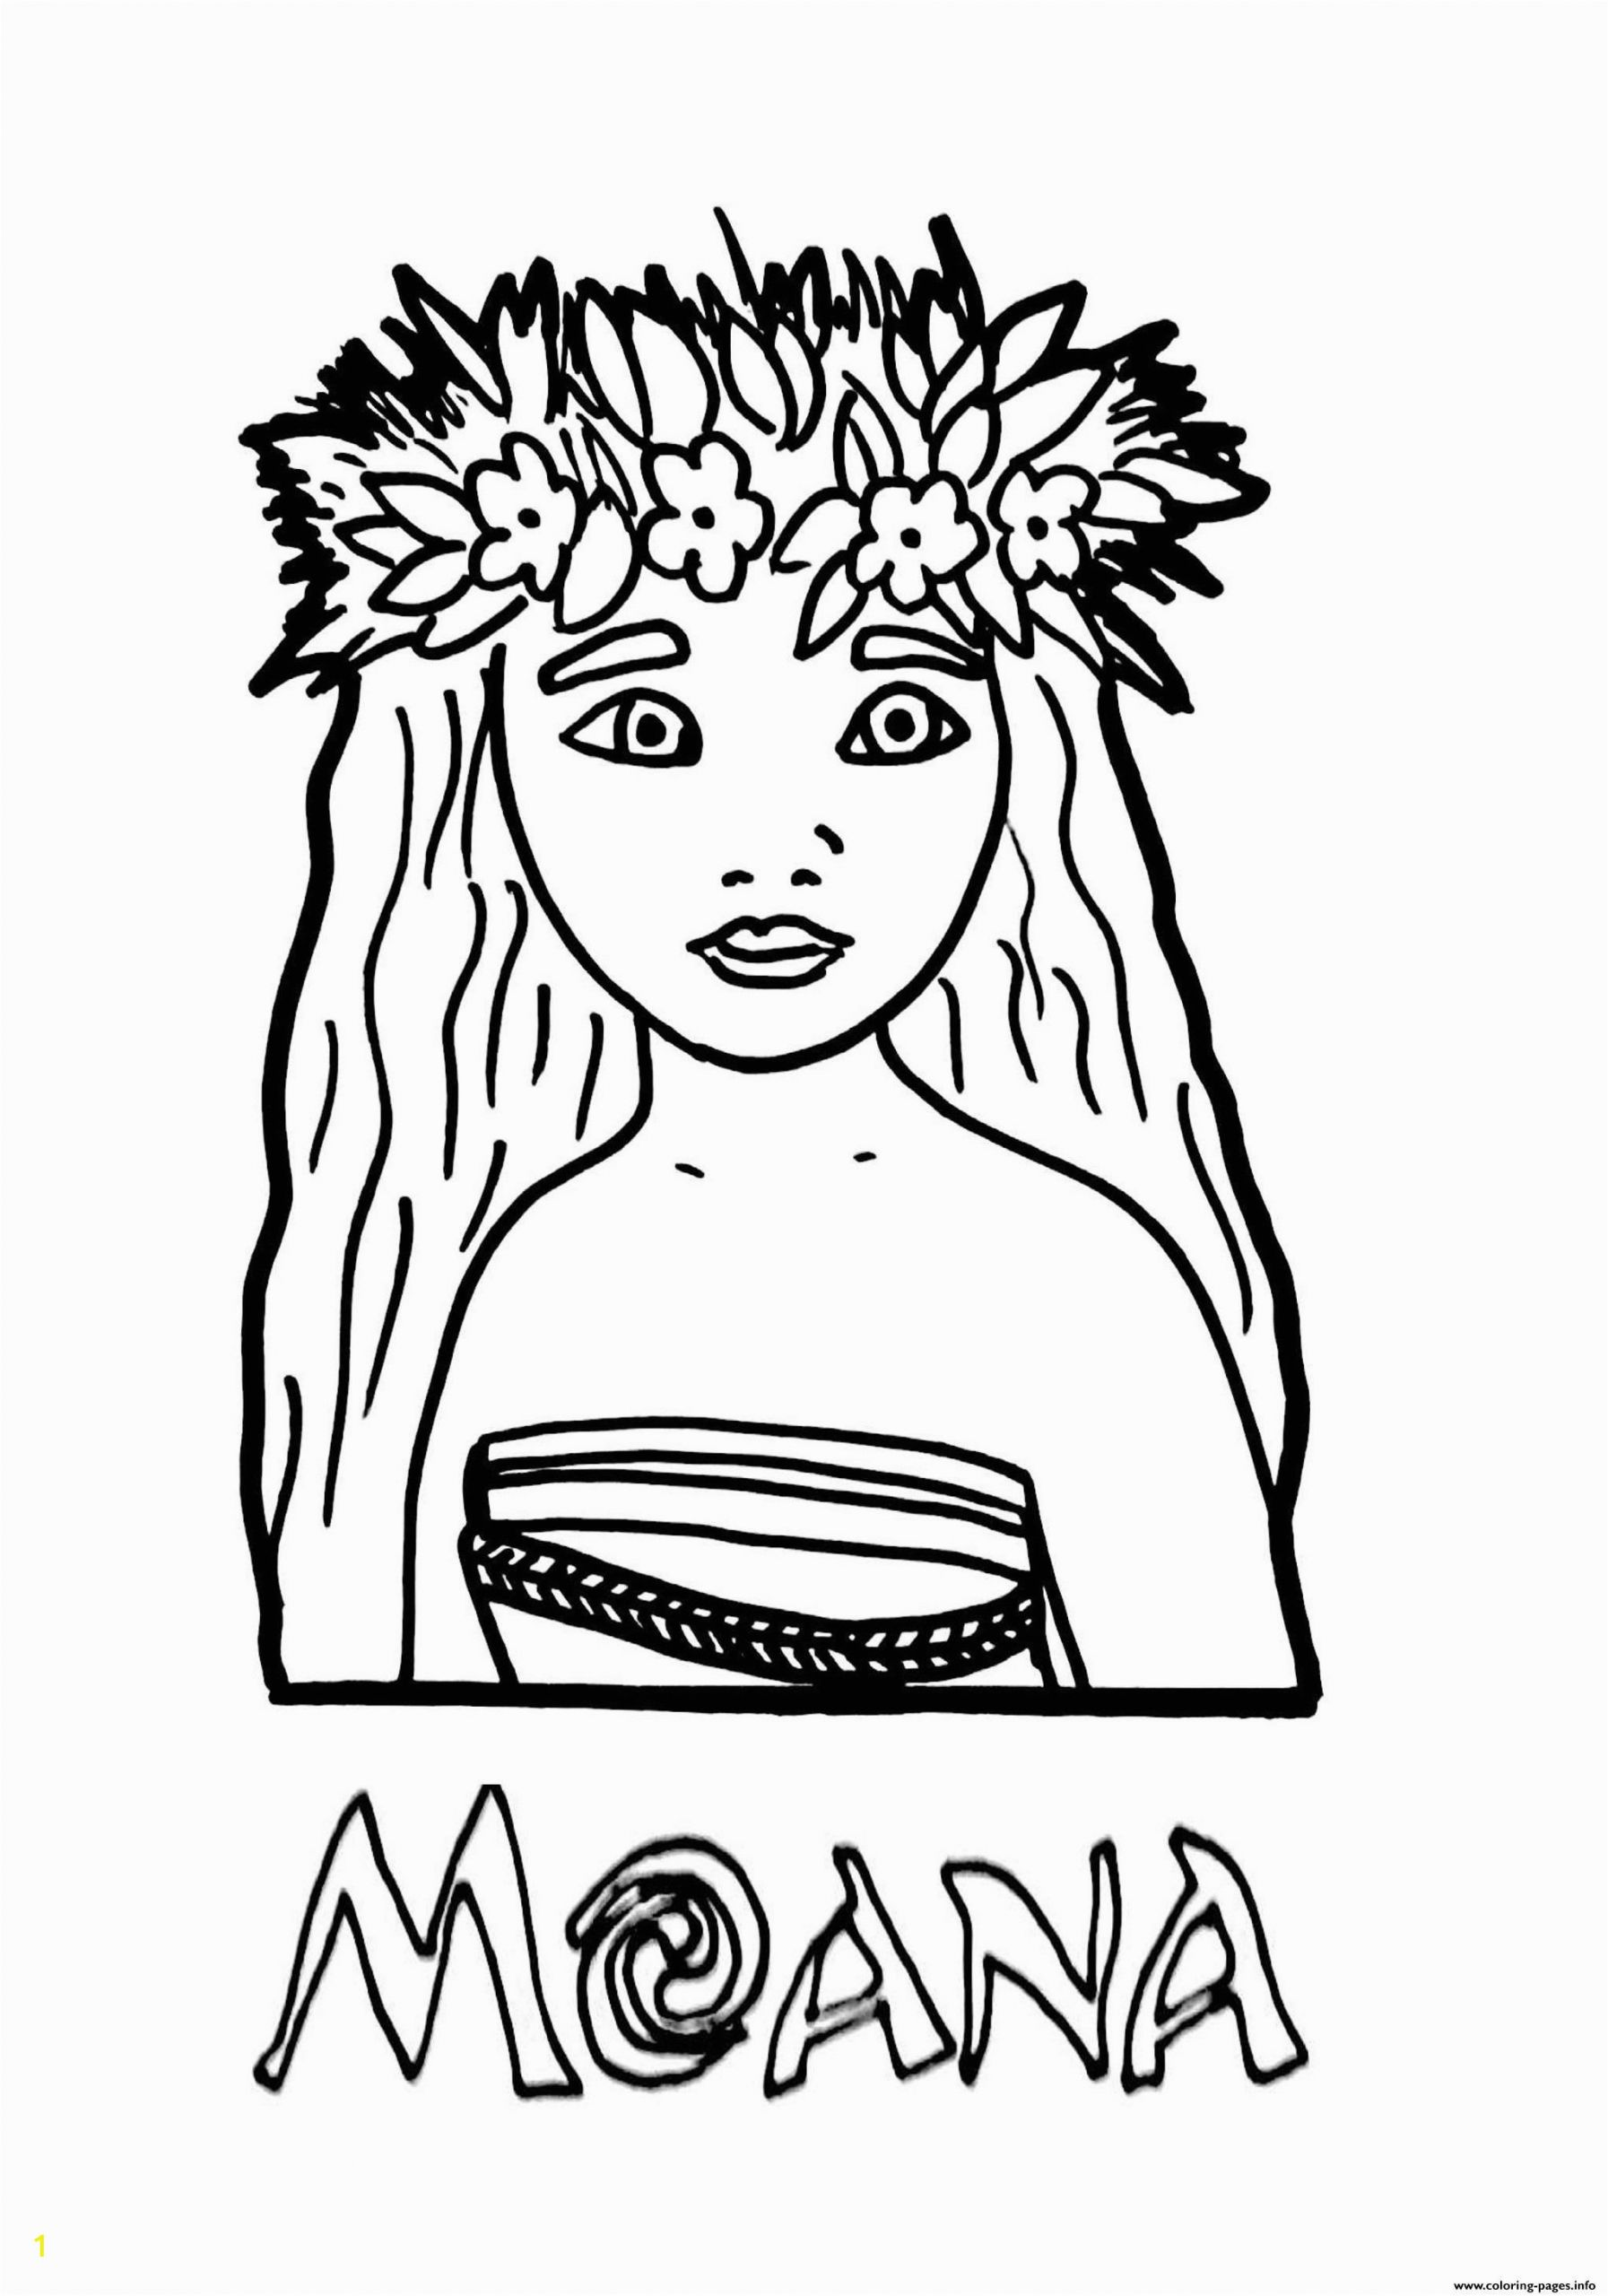 Moana Coloring Pages Printable Coloring Pagesfo Moana Princess Printable Coloring Pages